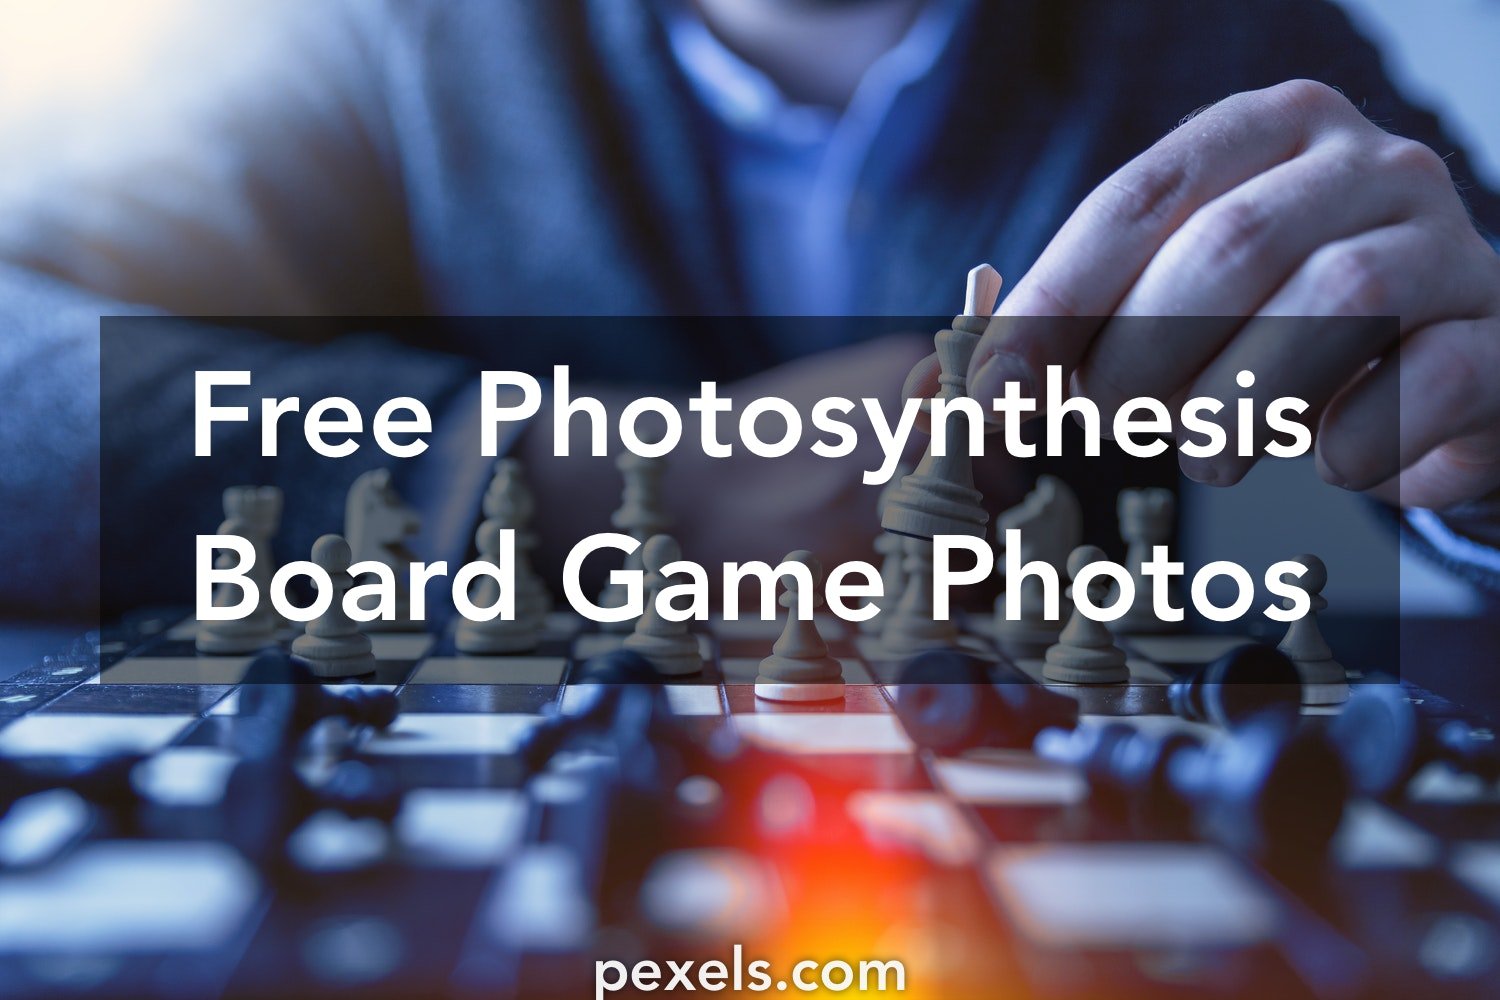 1000+ Engaging Photosynthesis Board Game Photos · Pexels